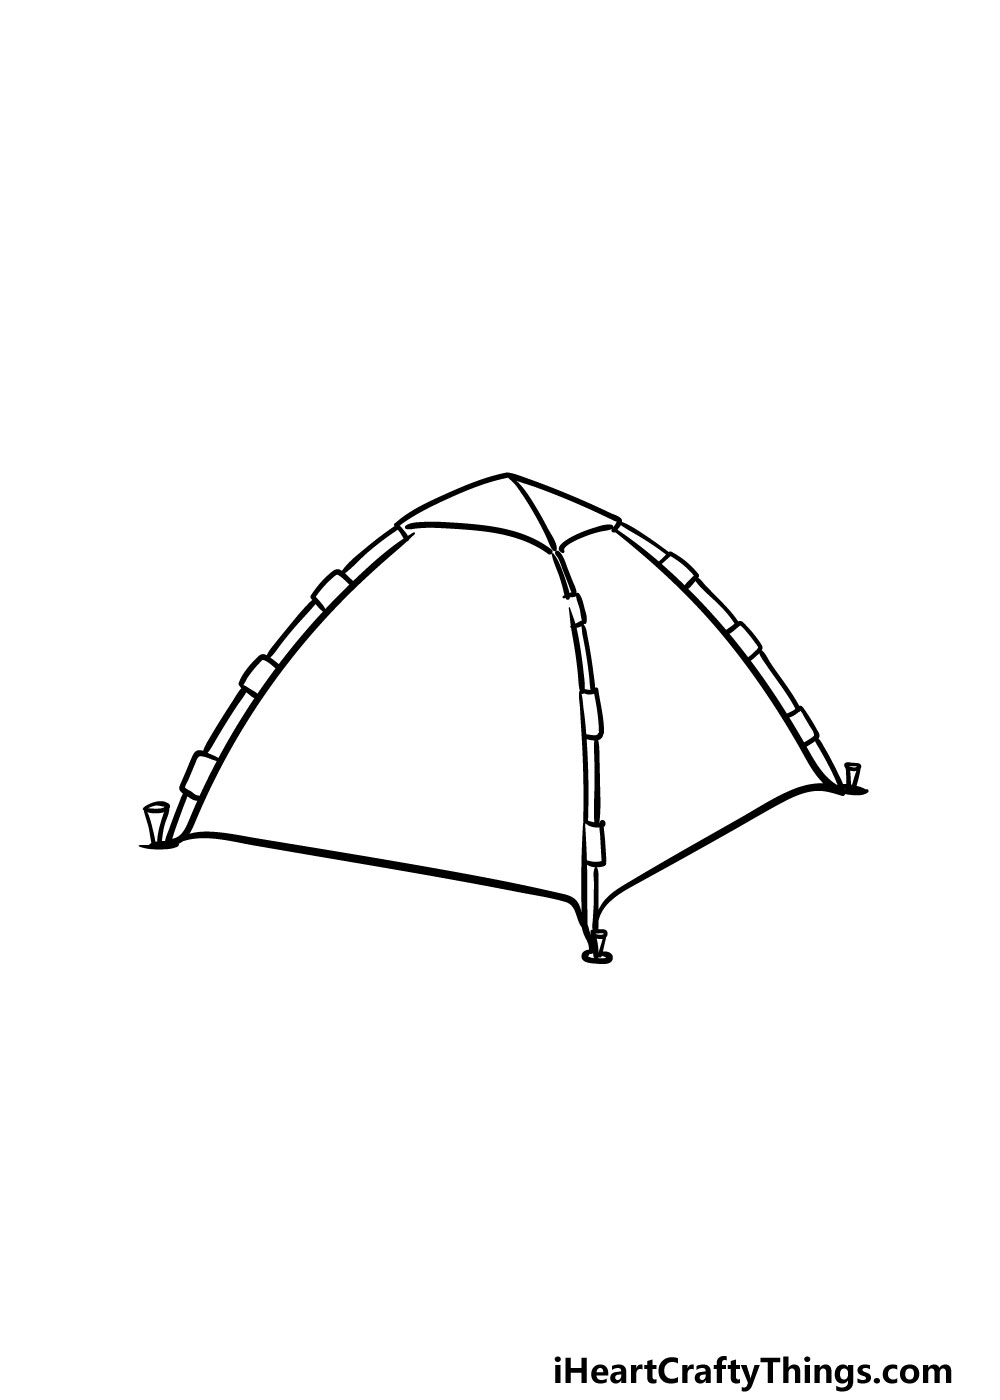 drawing a tent step 3